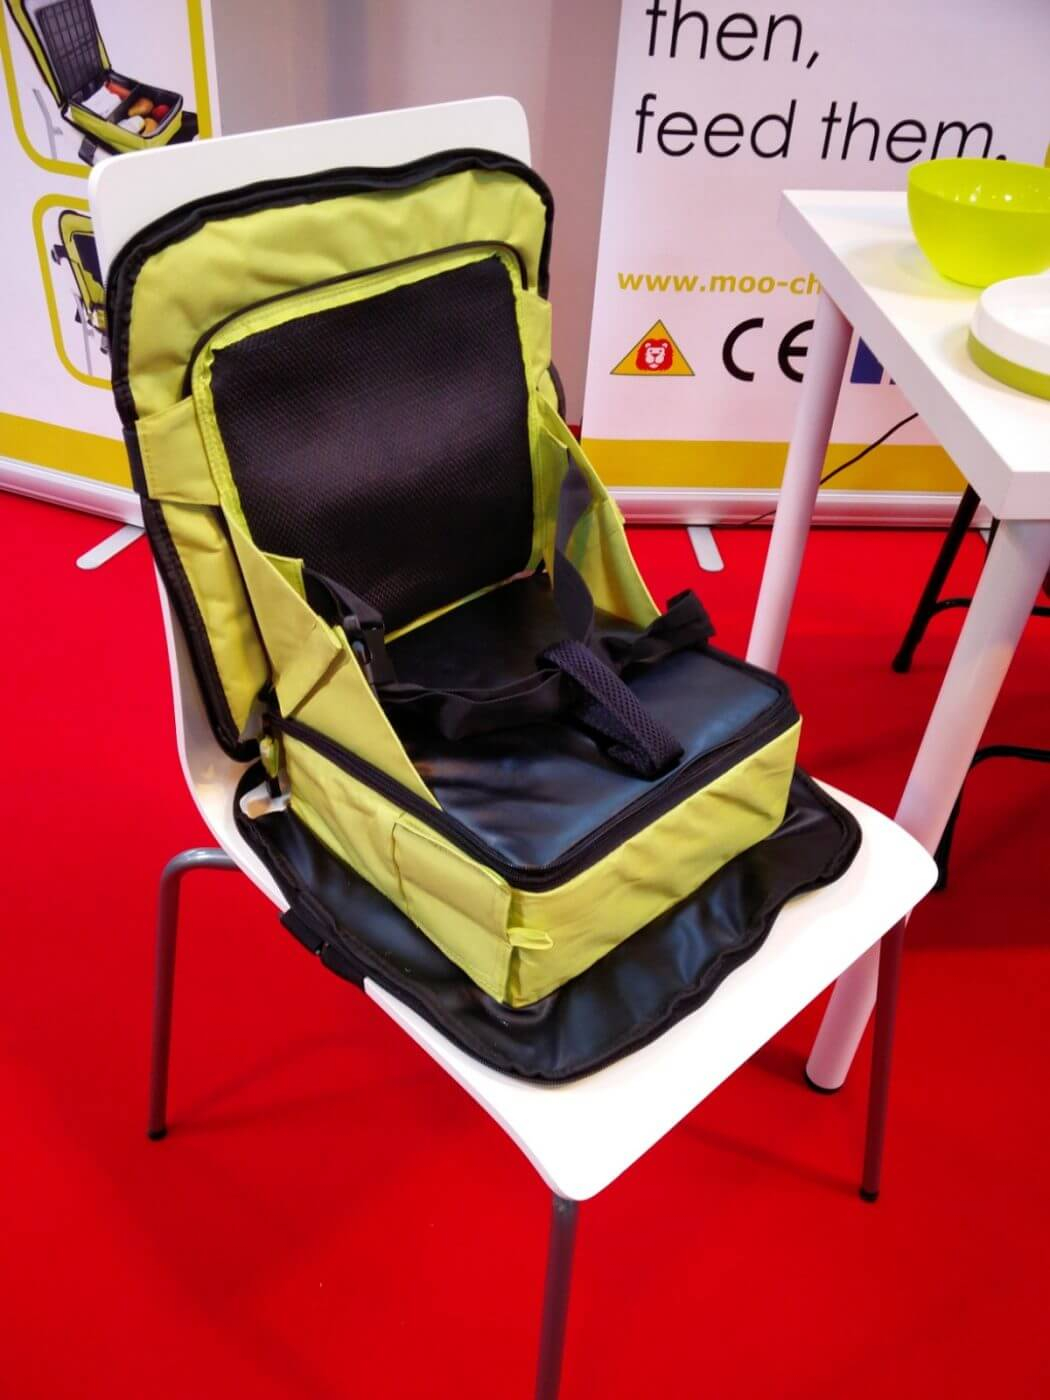 Moochew Baby Seat And Lunch Box At Gadget Show Live Geek